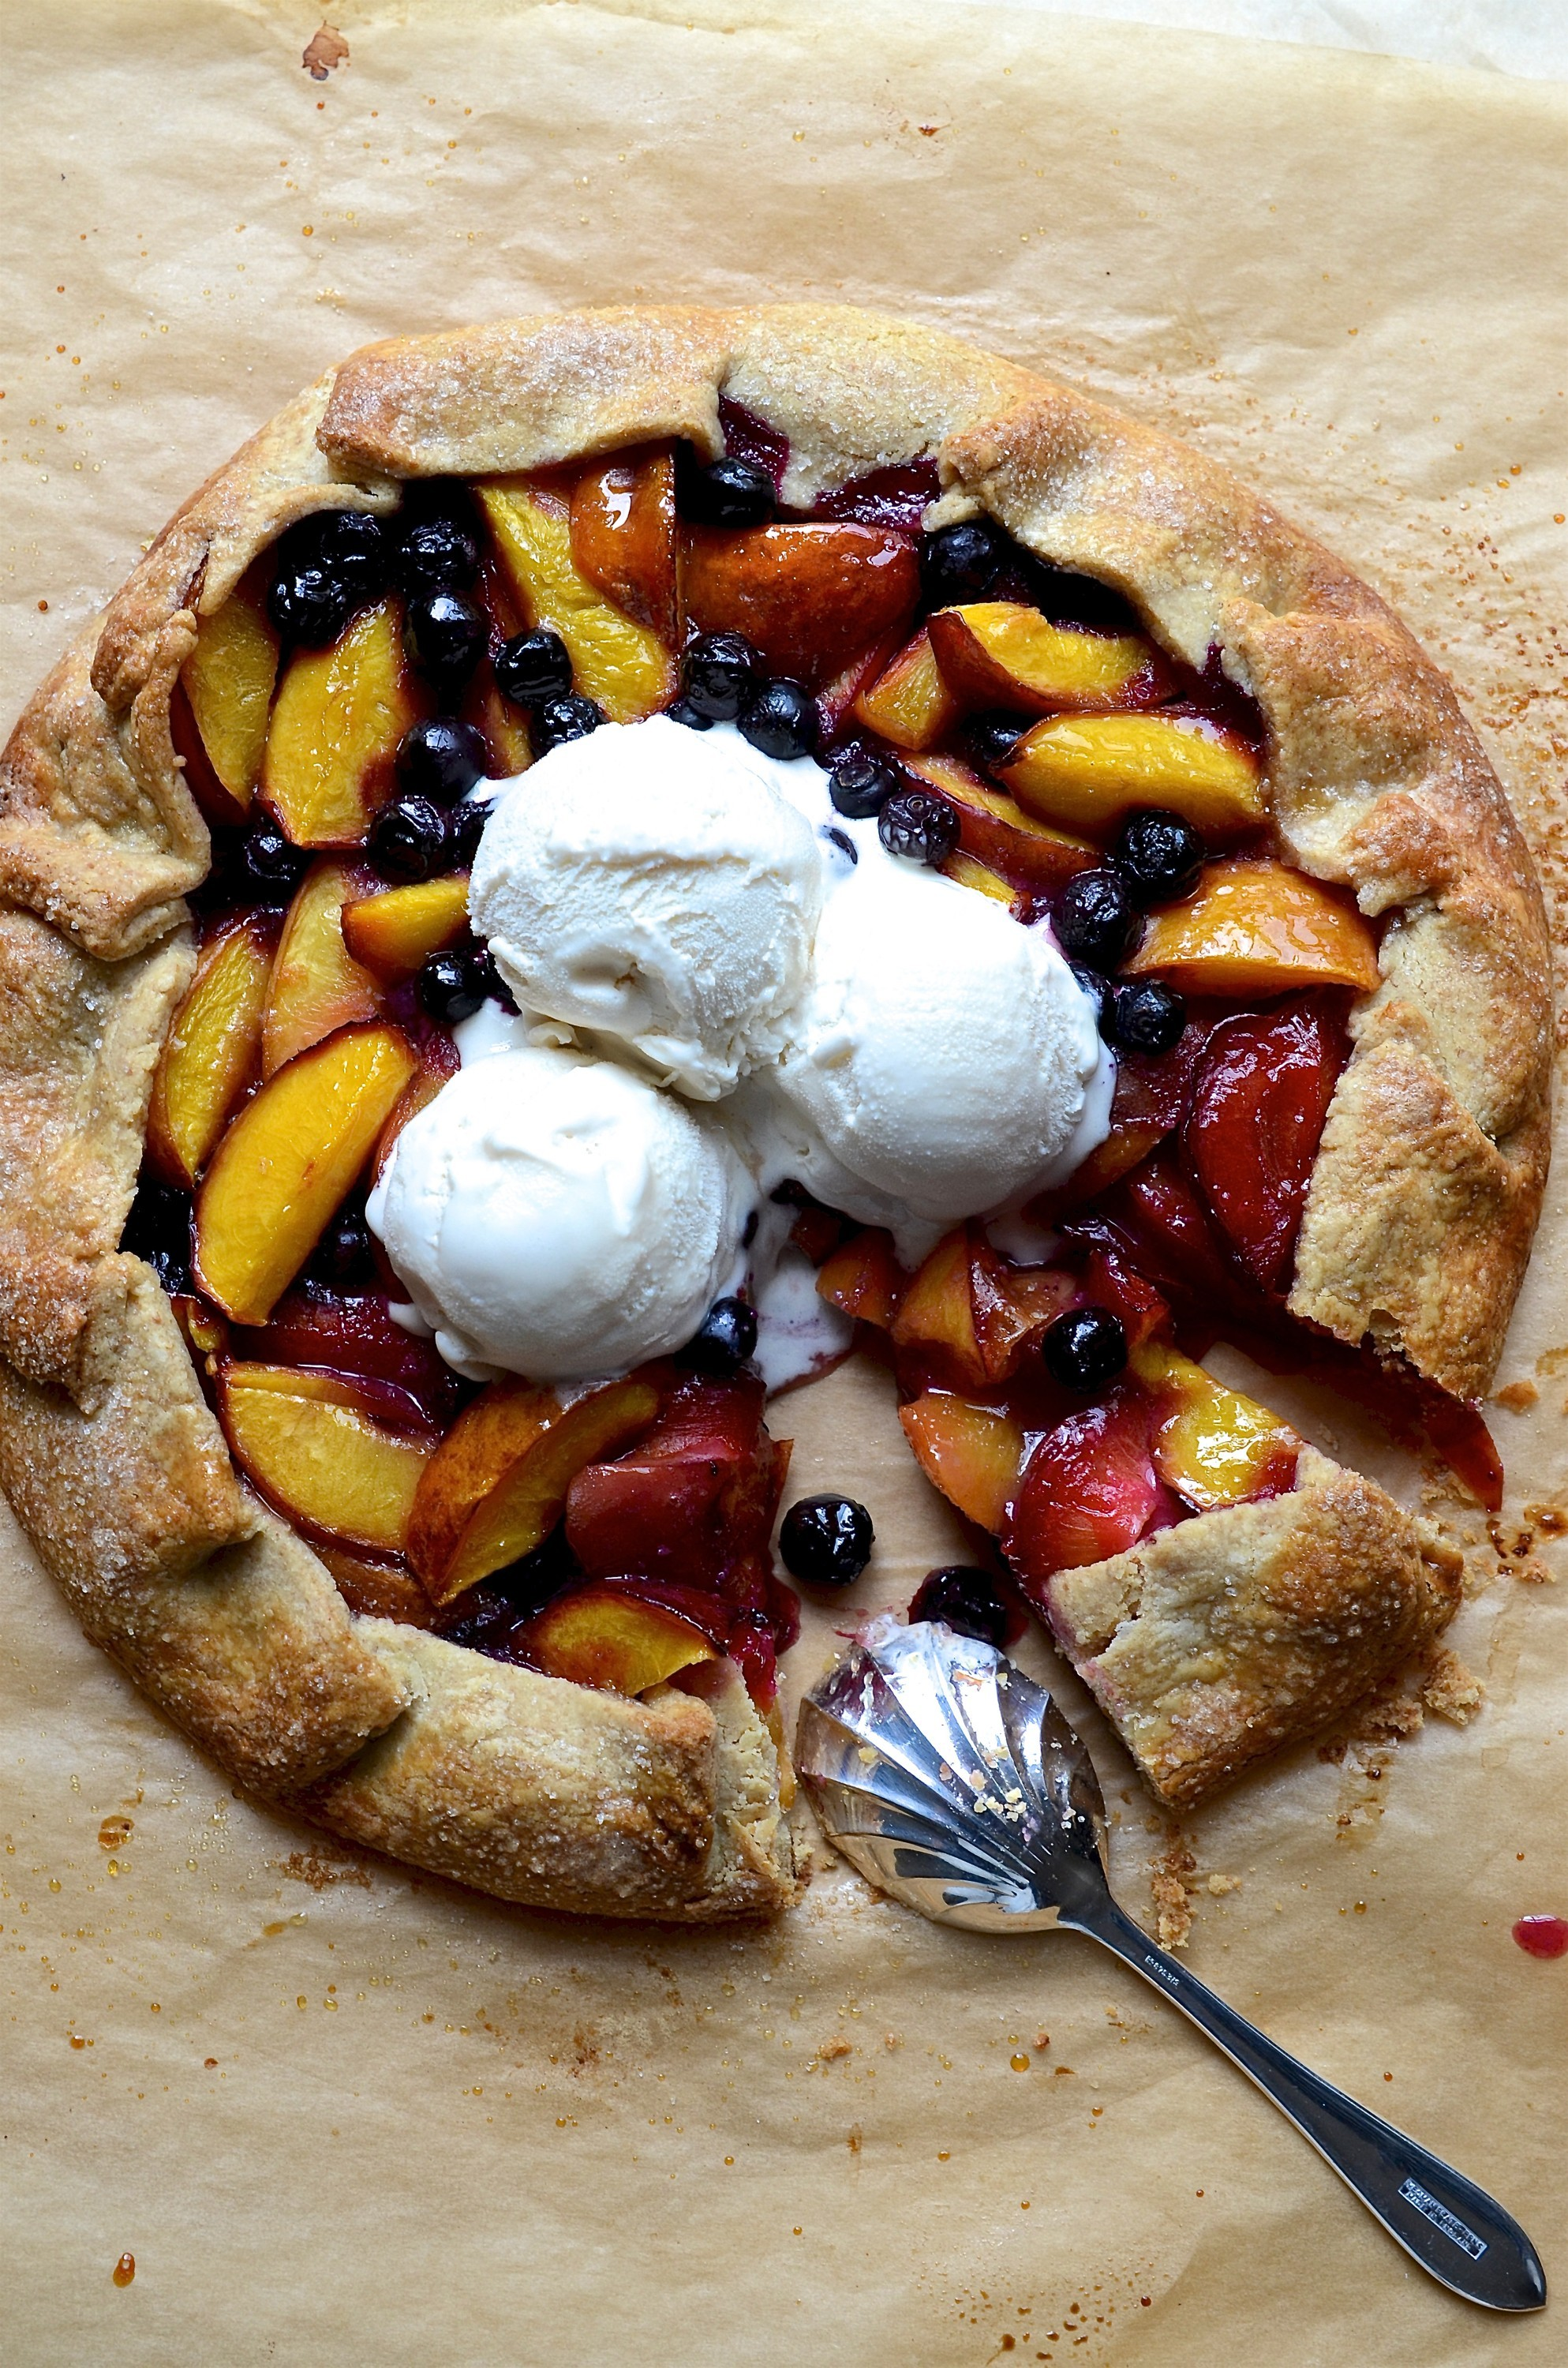 Nectarine Galette with blueberries and wholemeal Pastry | Desserts